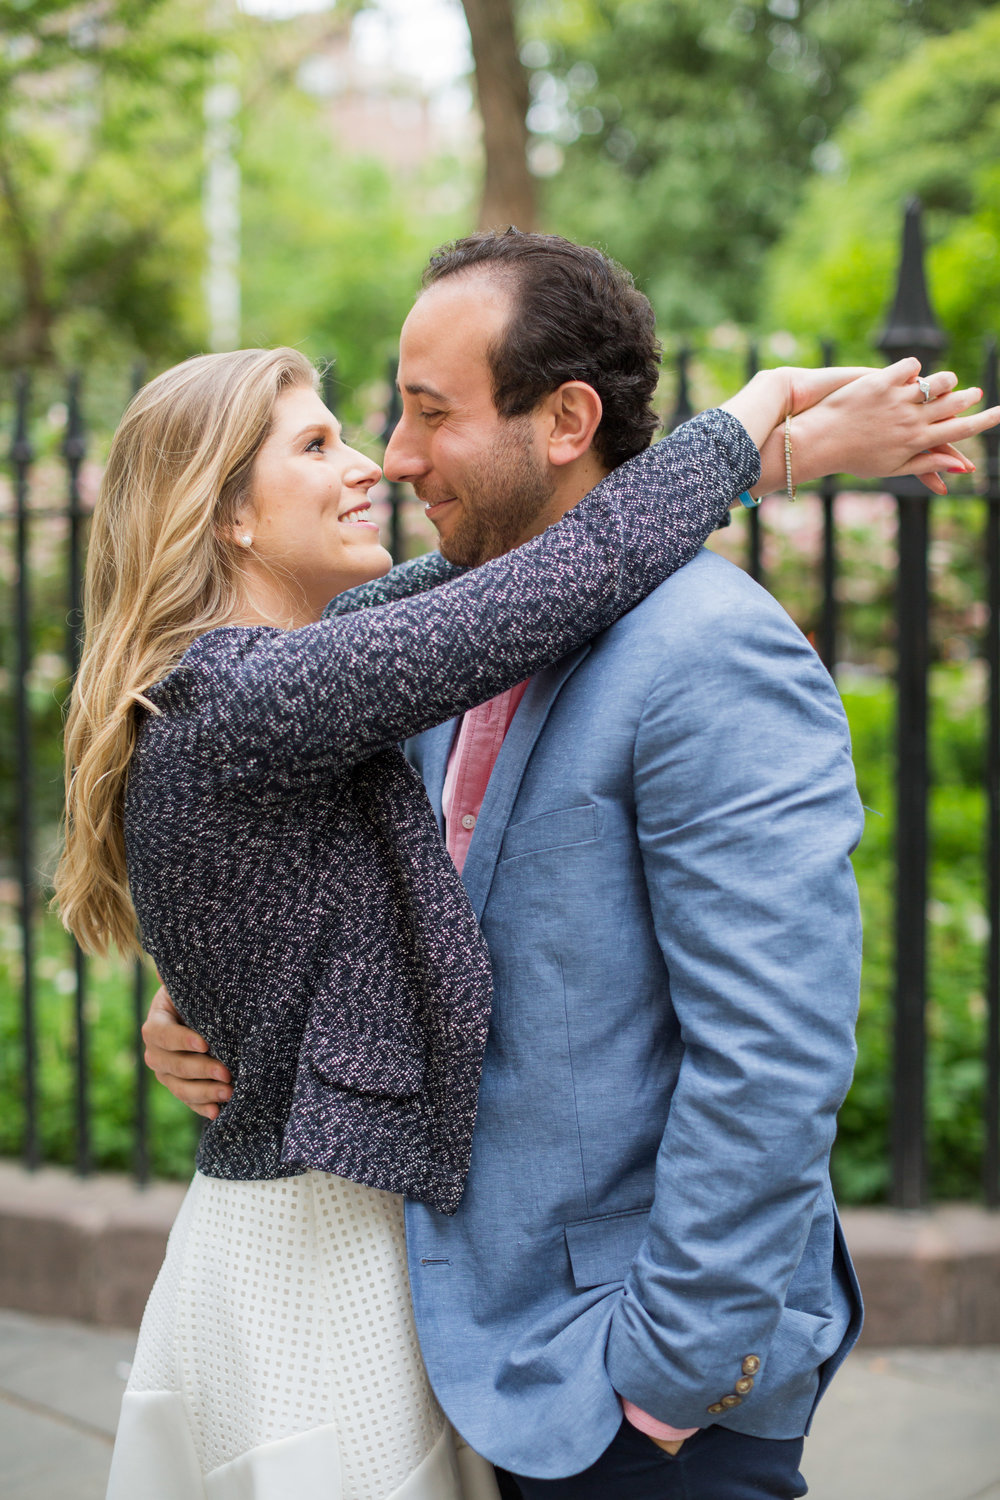 Melissa Kruse Photography - Courtney & JP Gramercy NYC Engagement Photos-158.jpg